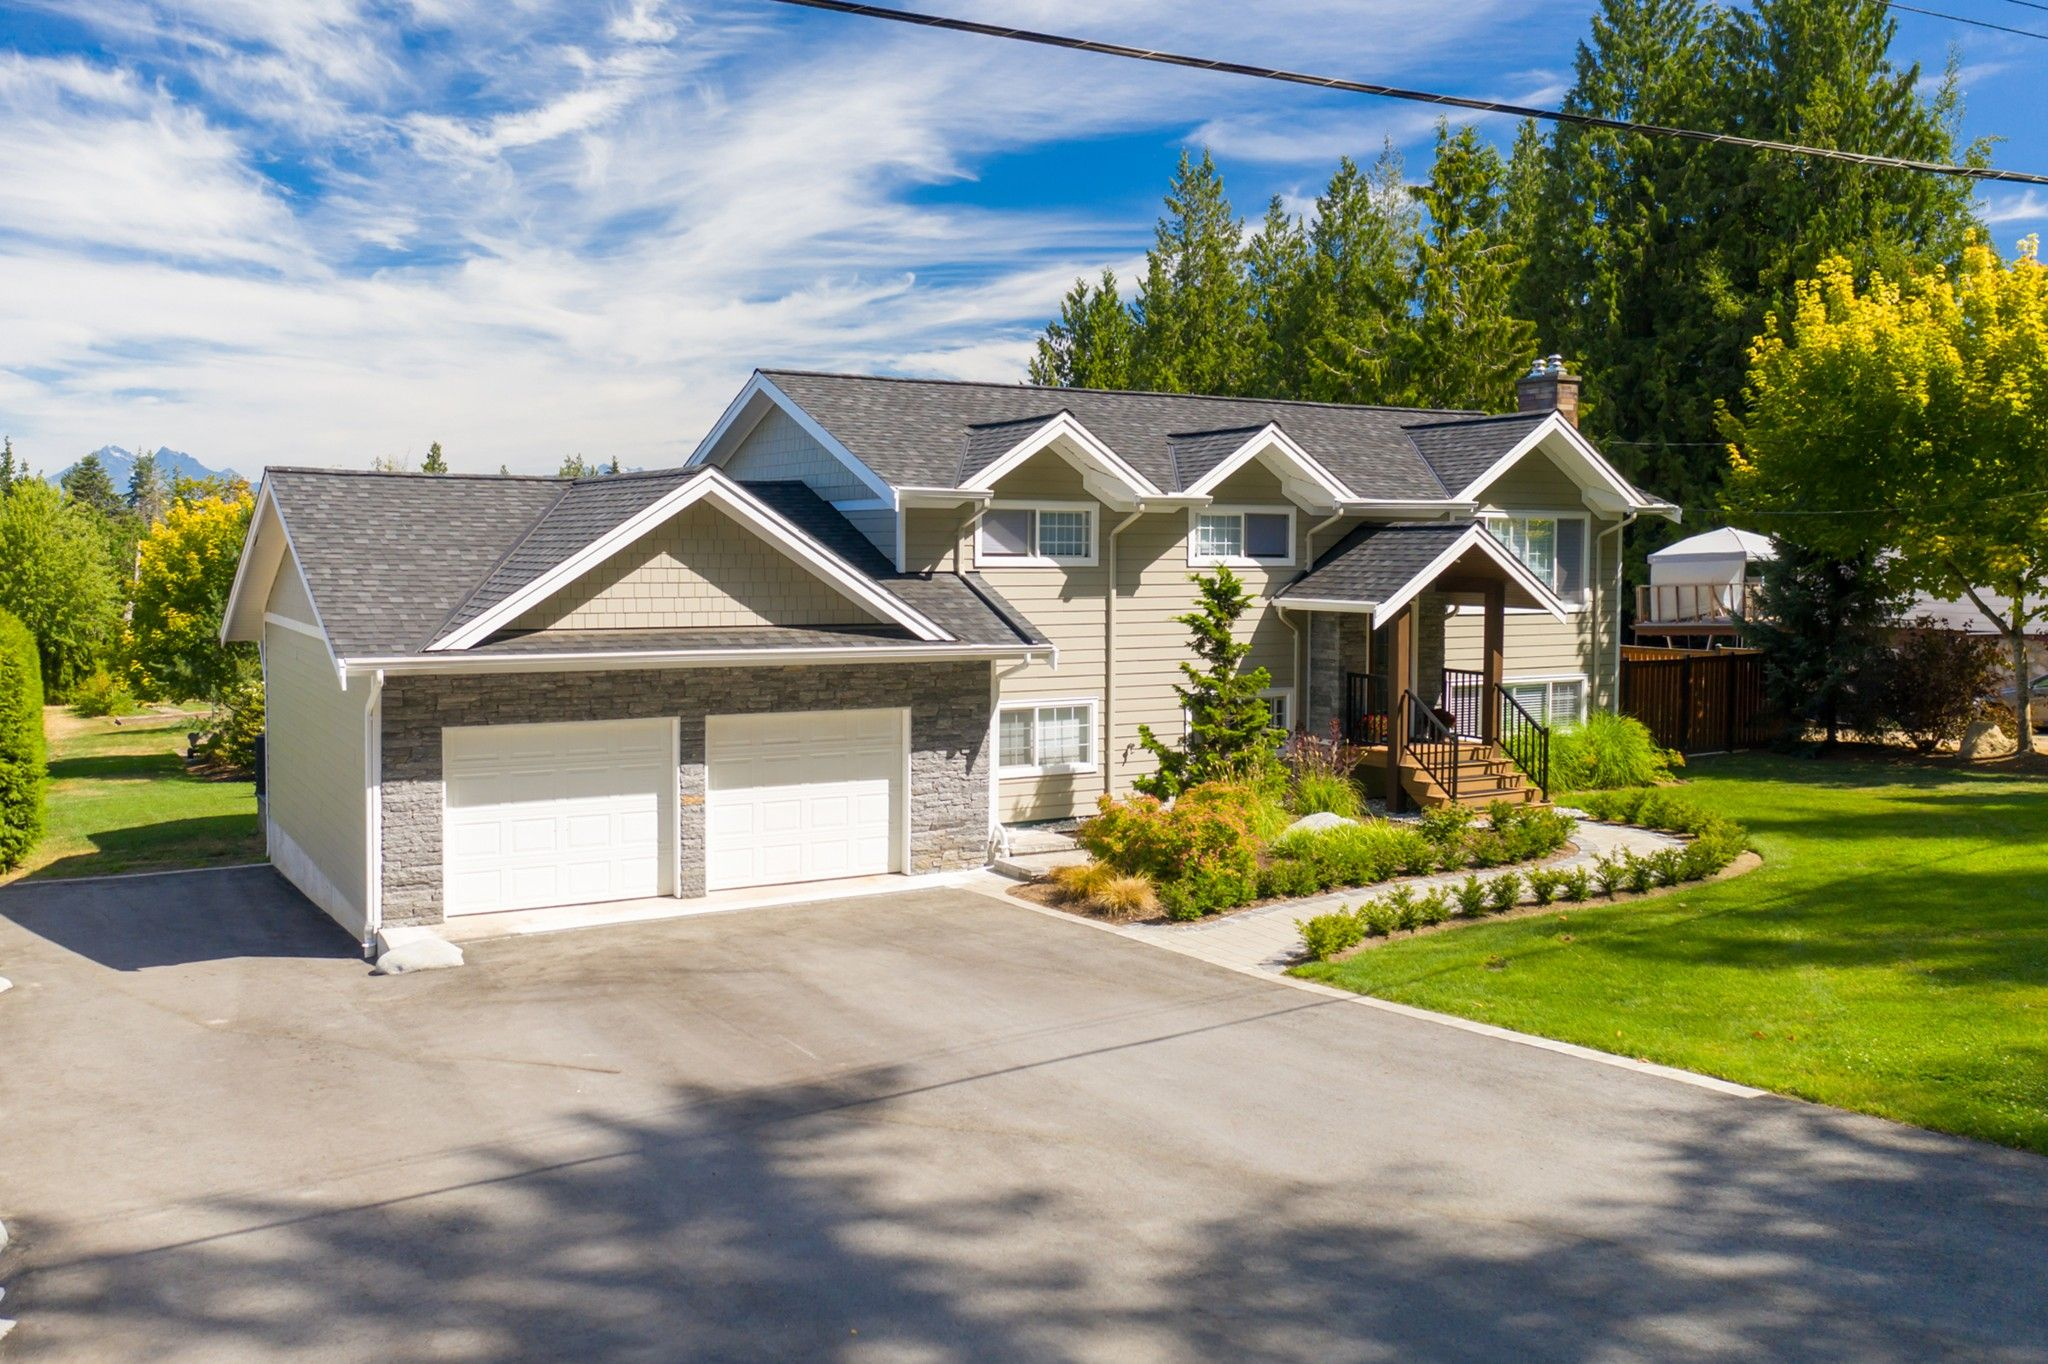 """Main Photo: 24861 40 Avenue in Langley: Salmon River House for sale in """"Salmon River"""" : MLS®# R2604606"""